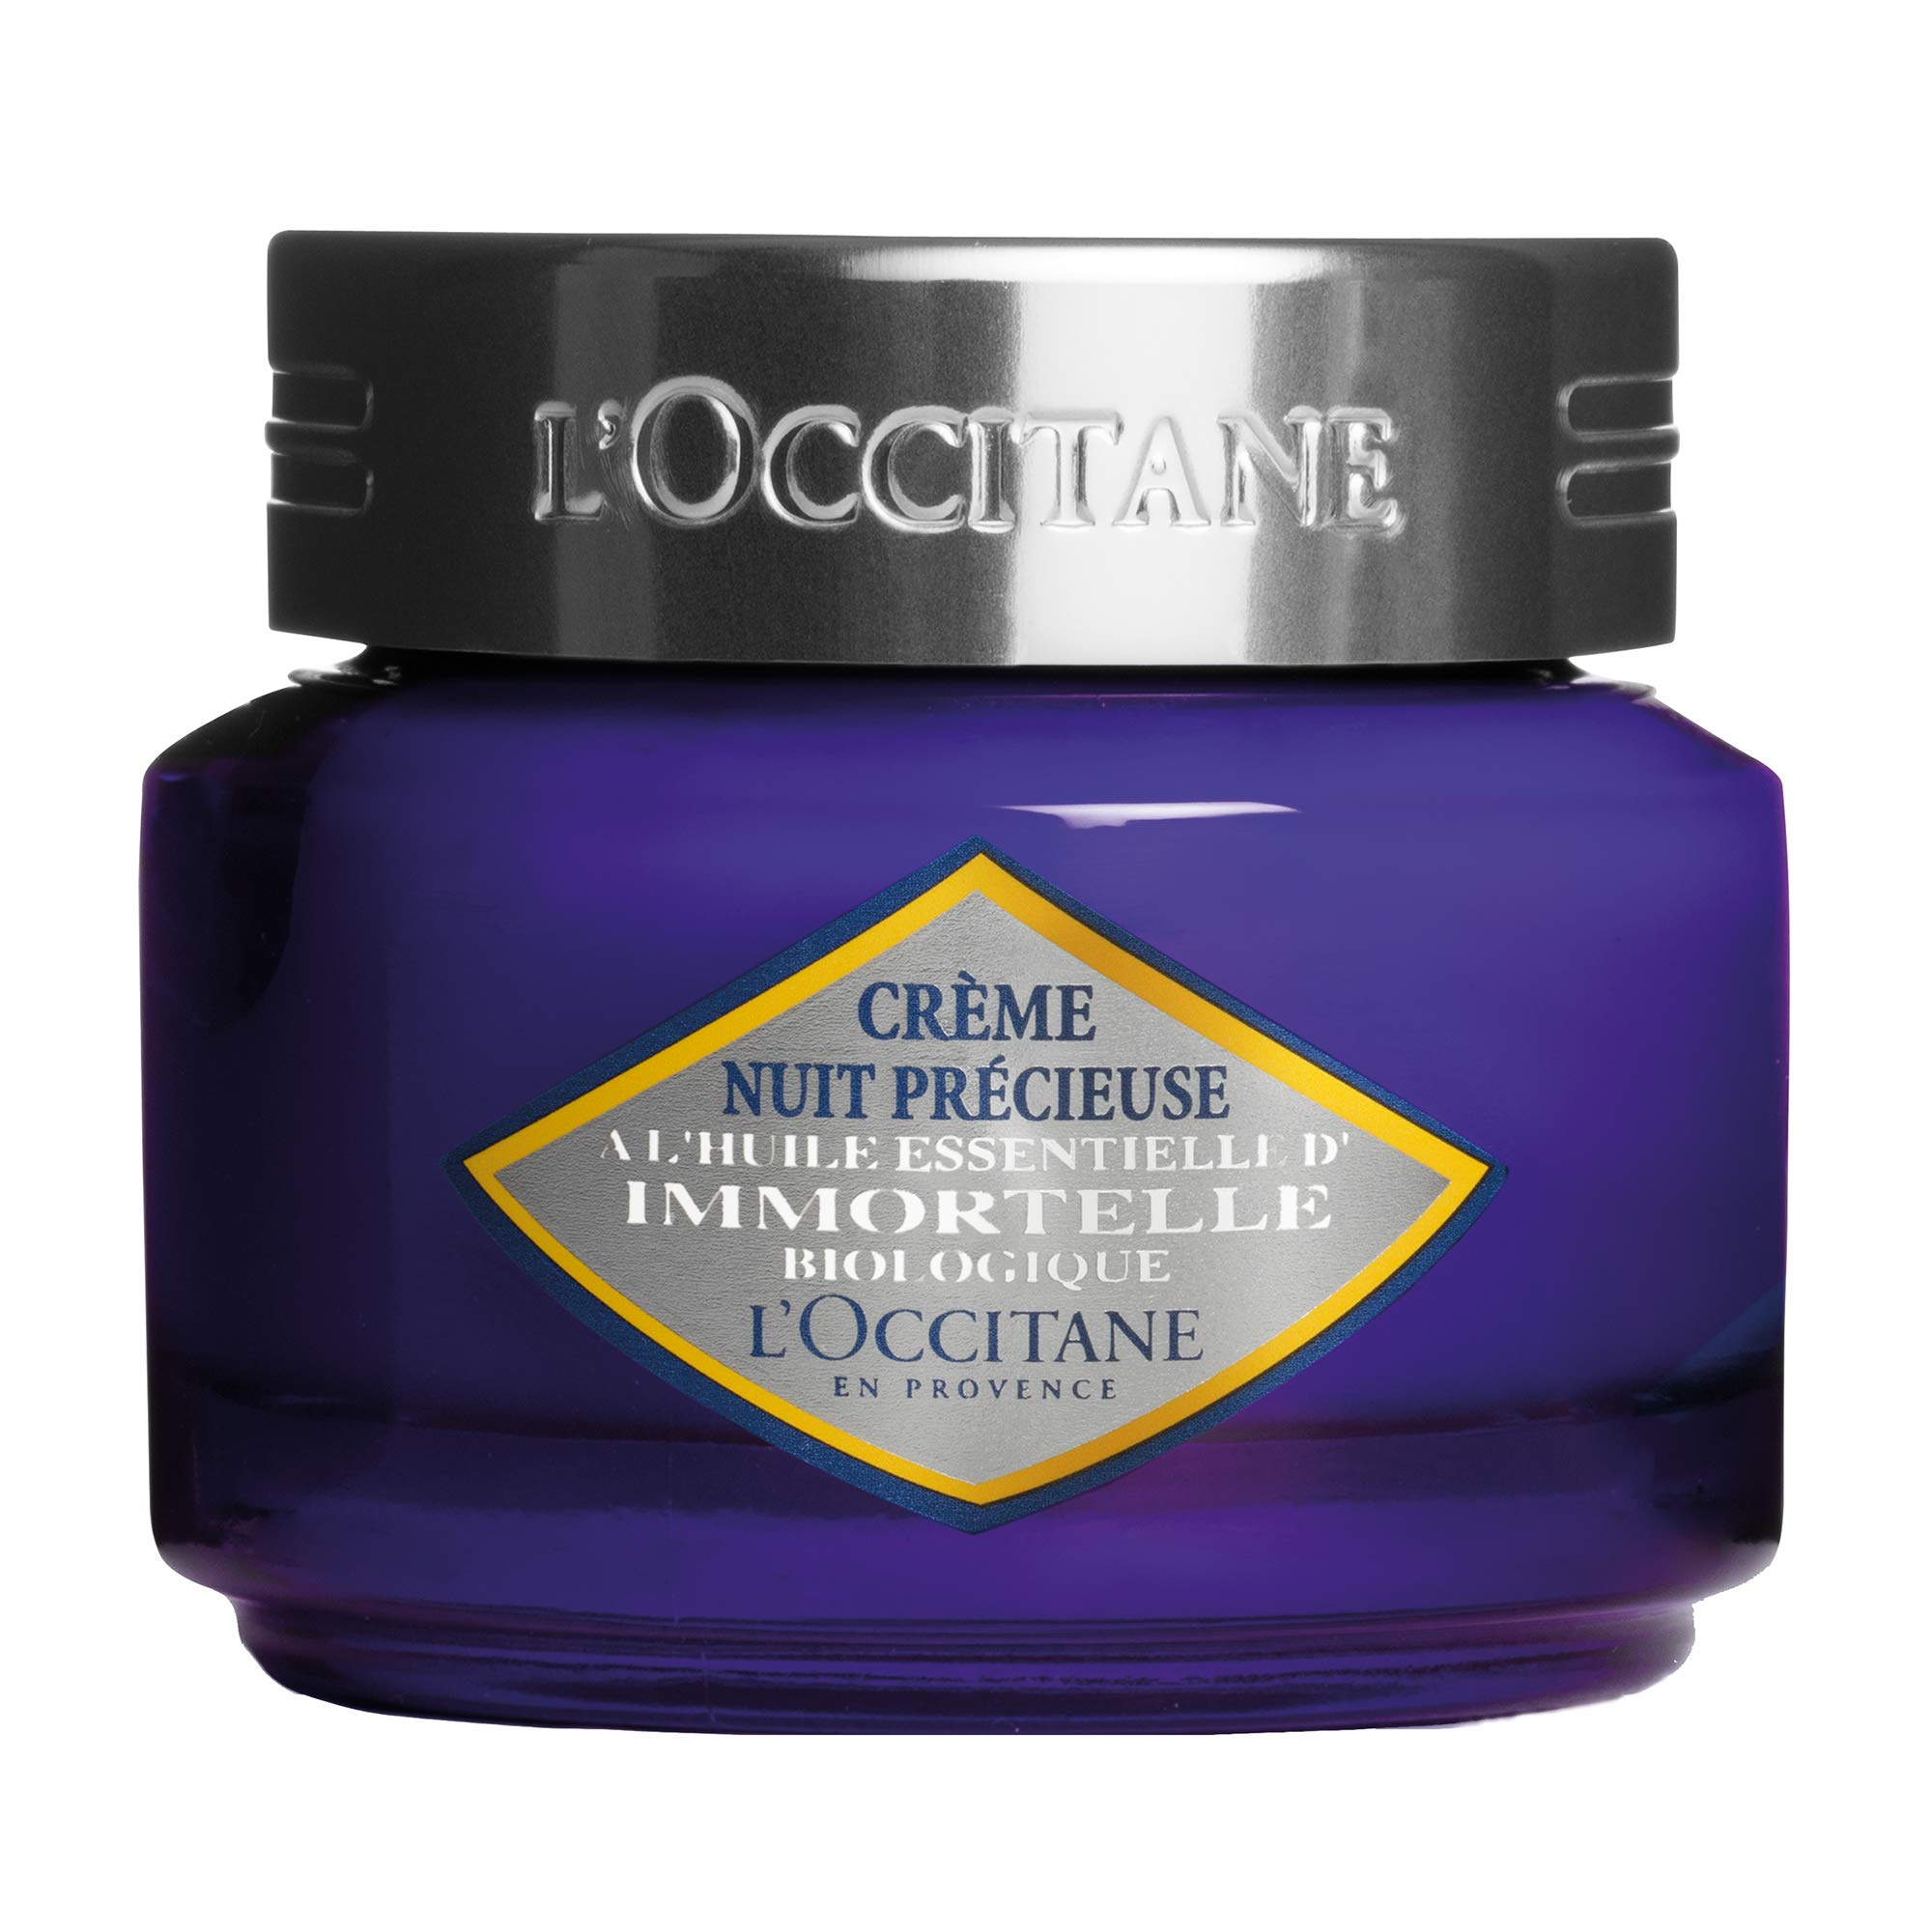 L'Occitane Immortelle Precious Night Cream to Help Reduce the Appearance of Wrinkles, 1.7 oz